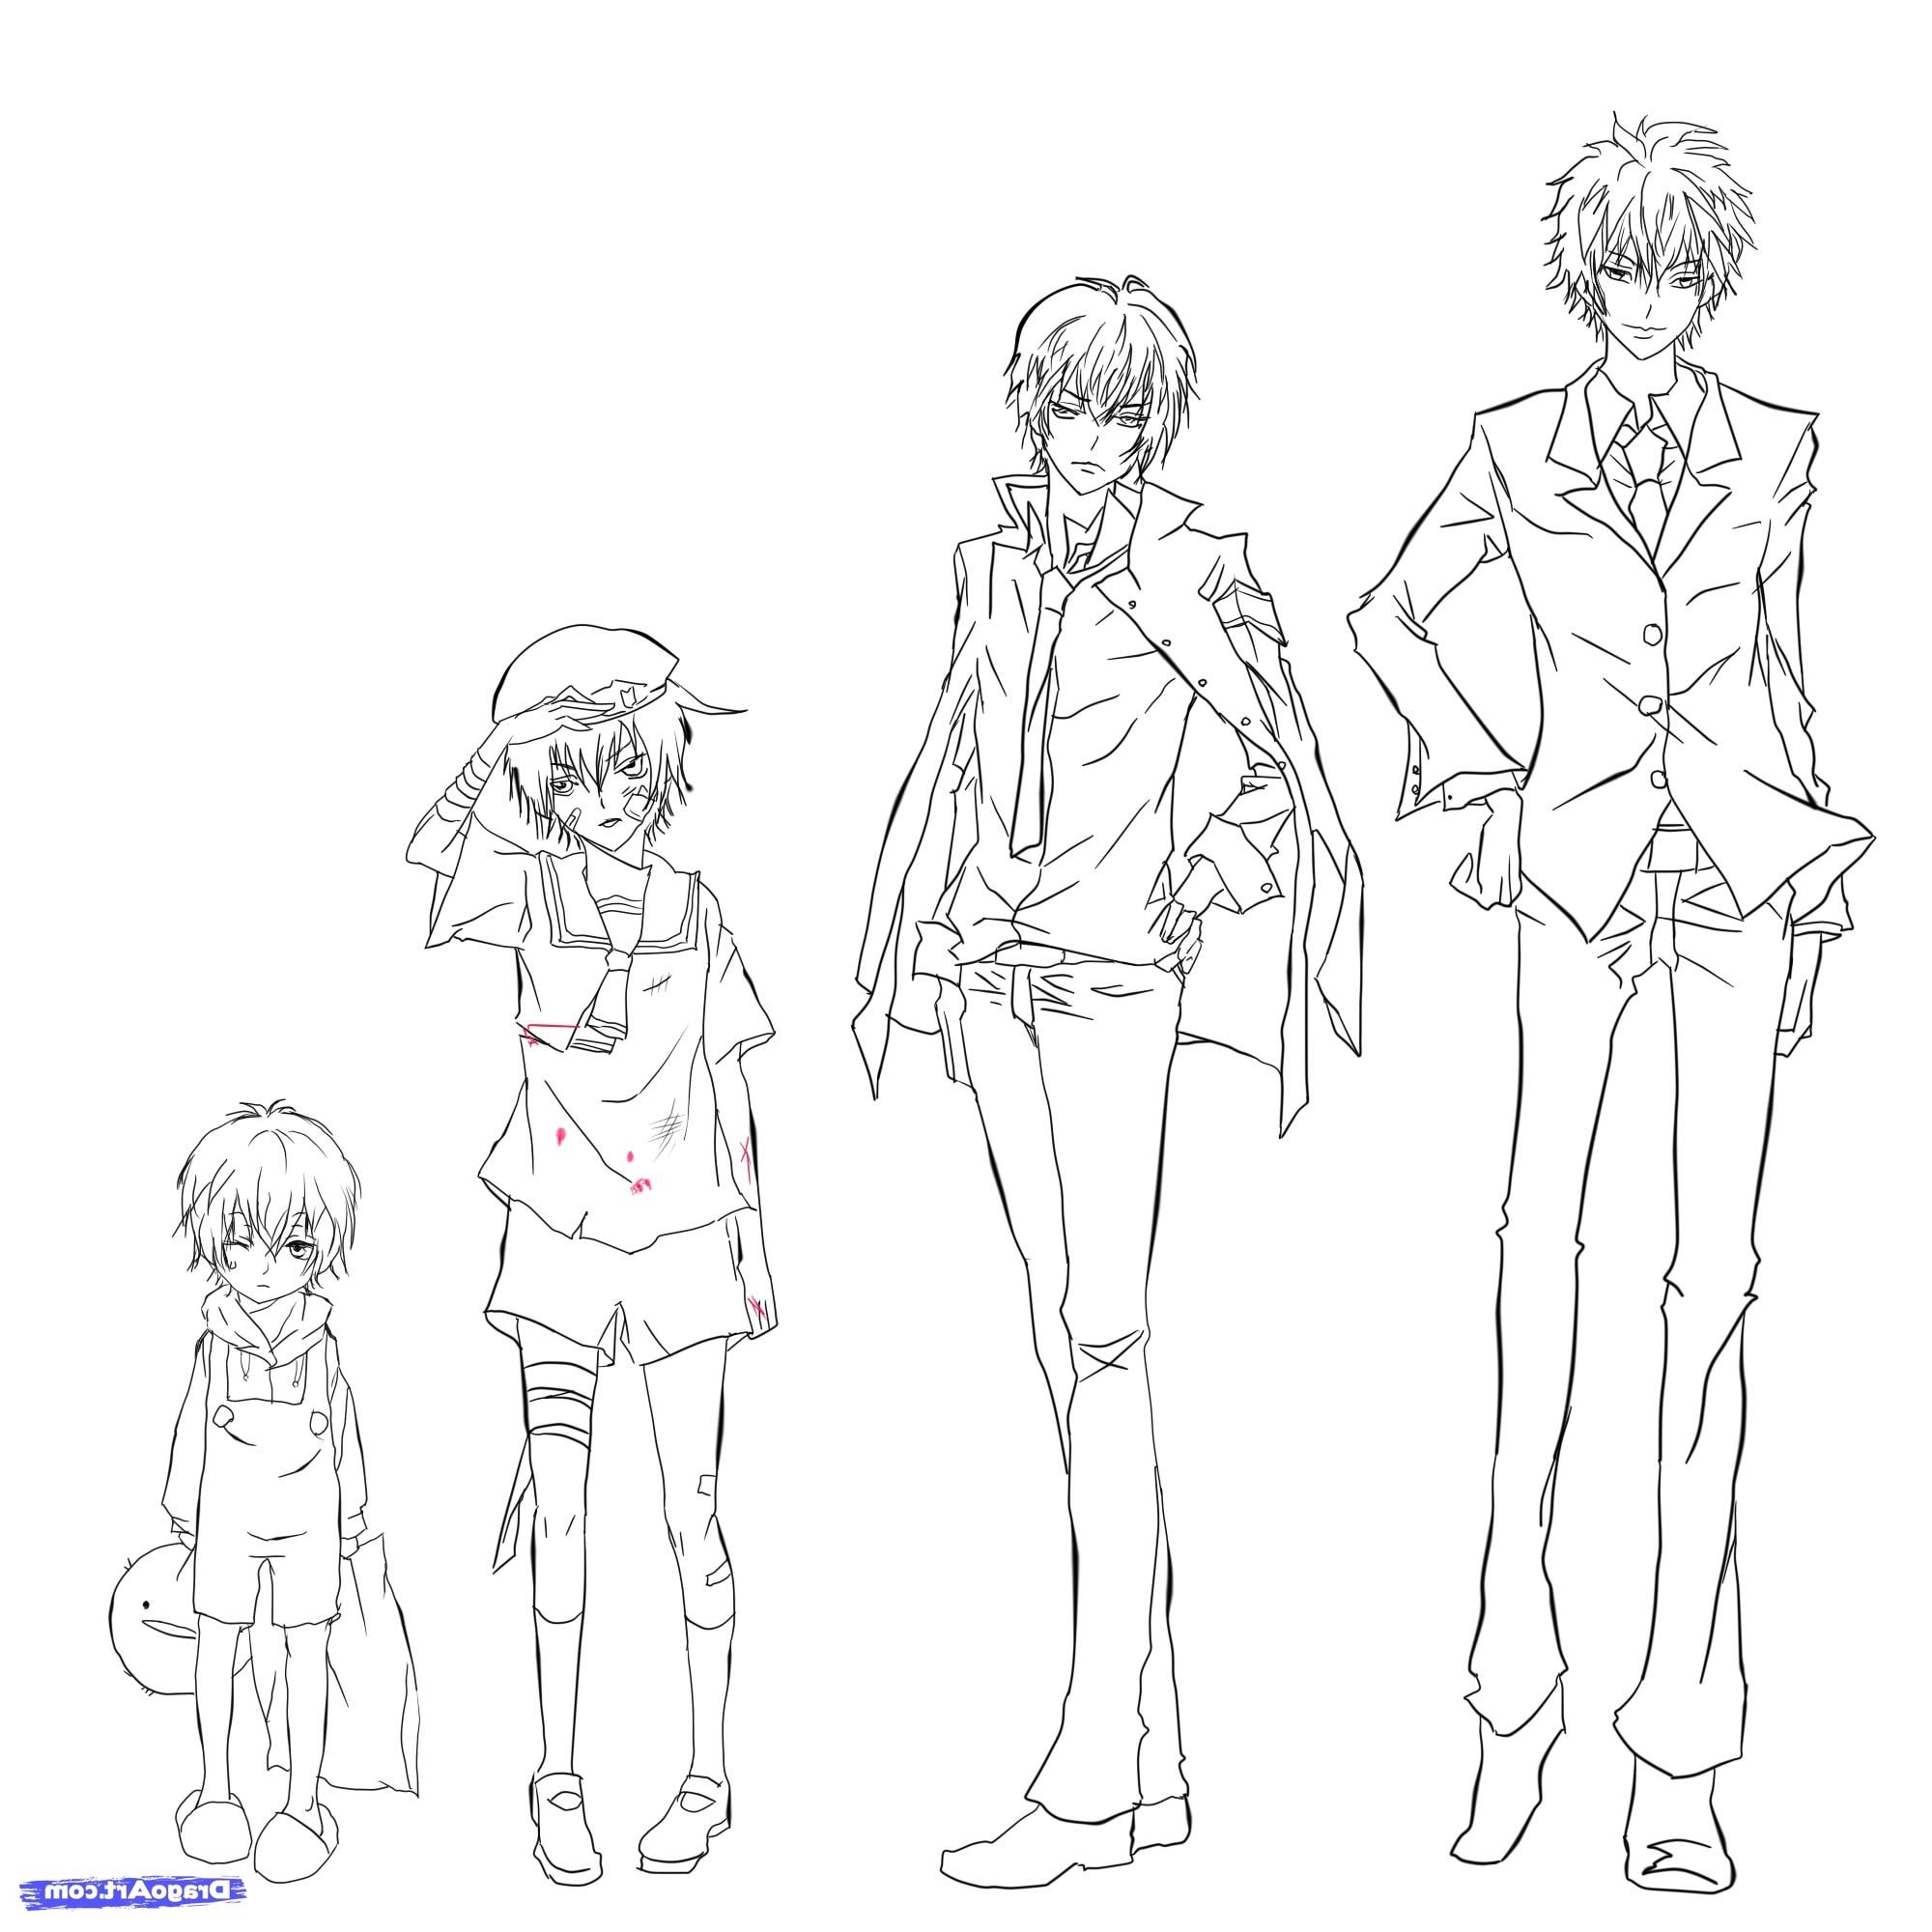 2000x2000 Pencil Drawn Anime Characters Body Outline Pictures Anime Body